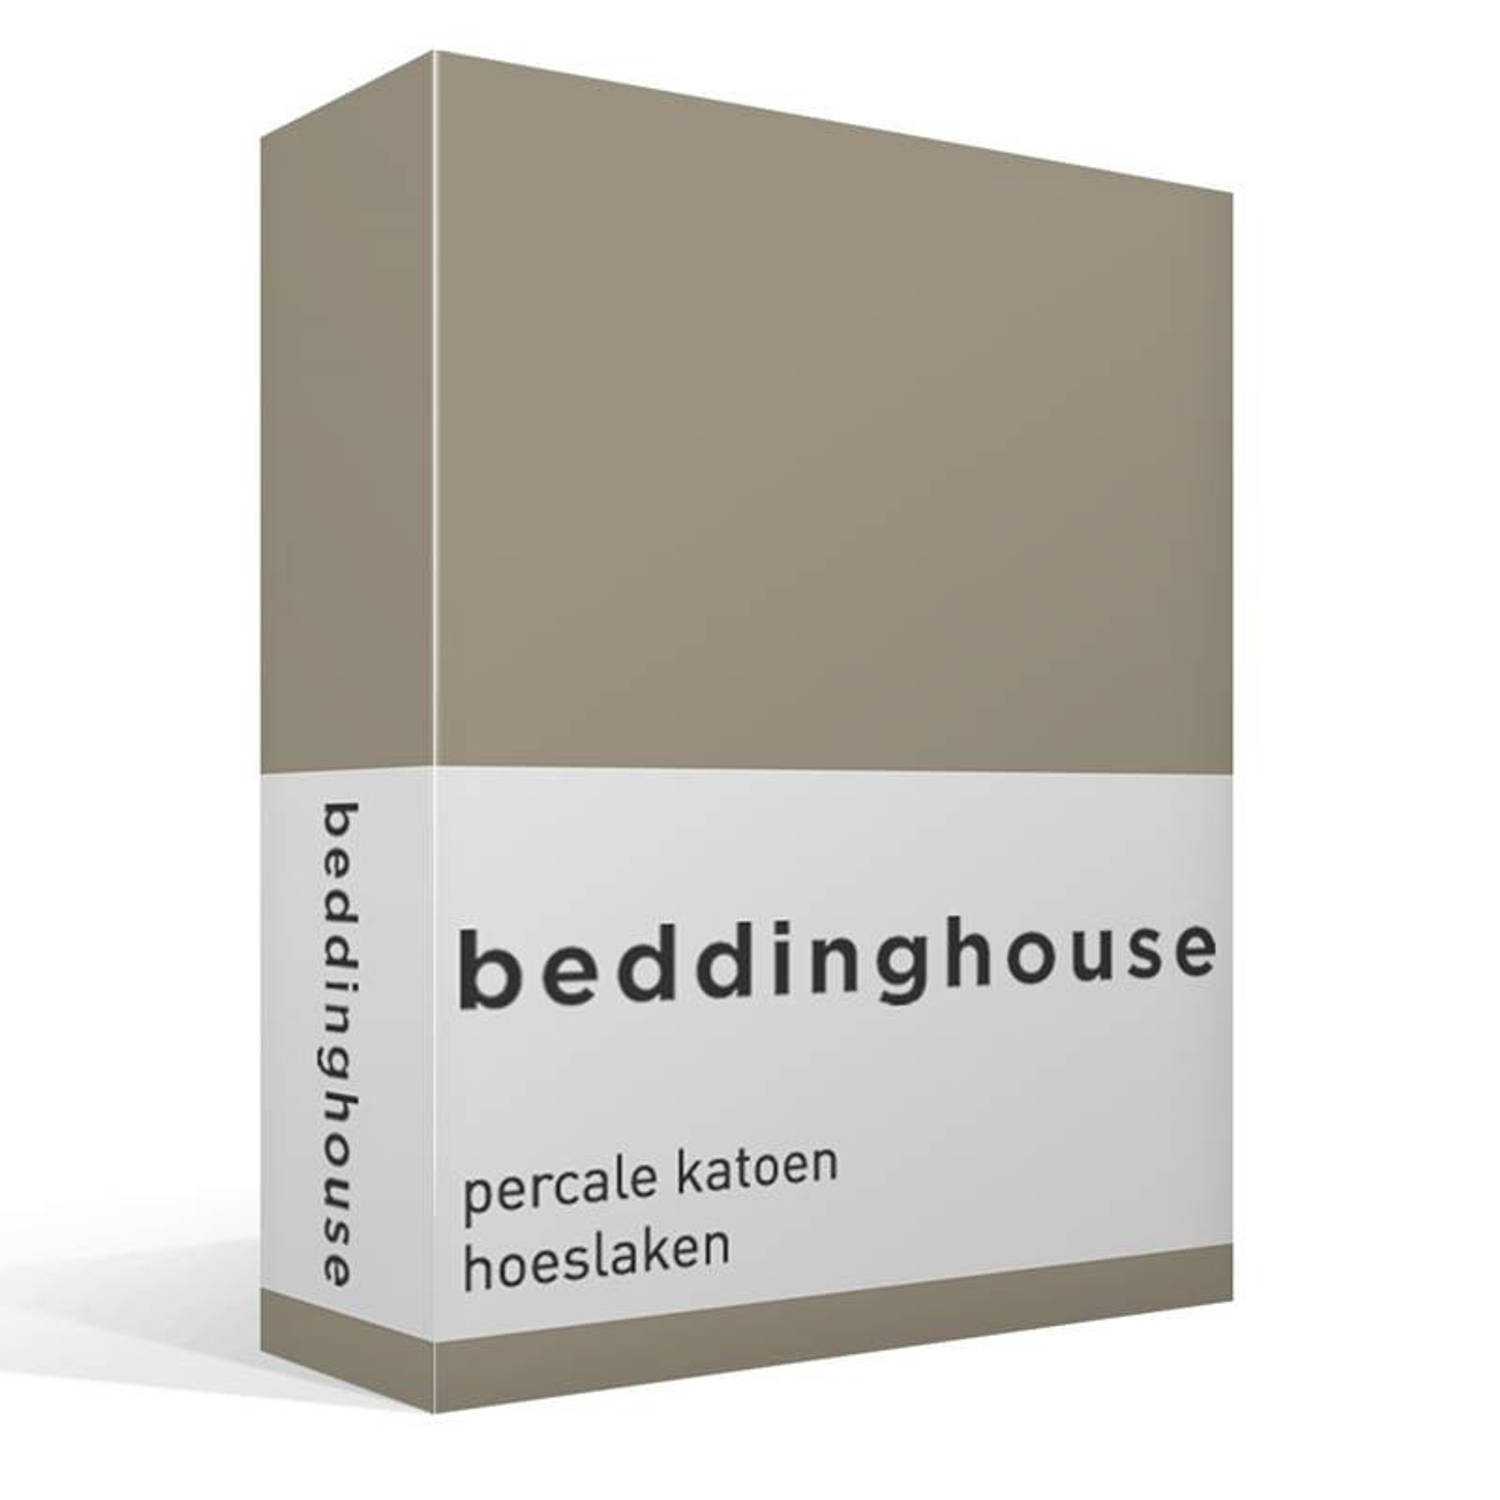 Beddinghouse percale katoen hoeslaken - 100% percale katoen - 1-persoons (80/90x200 cm) - Taupe